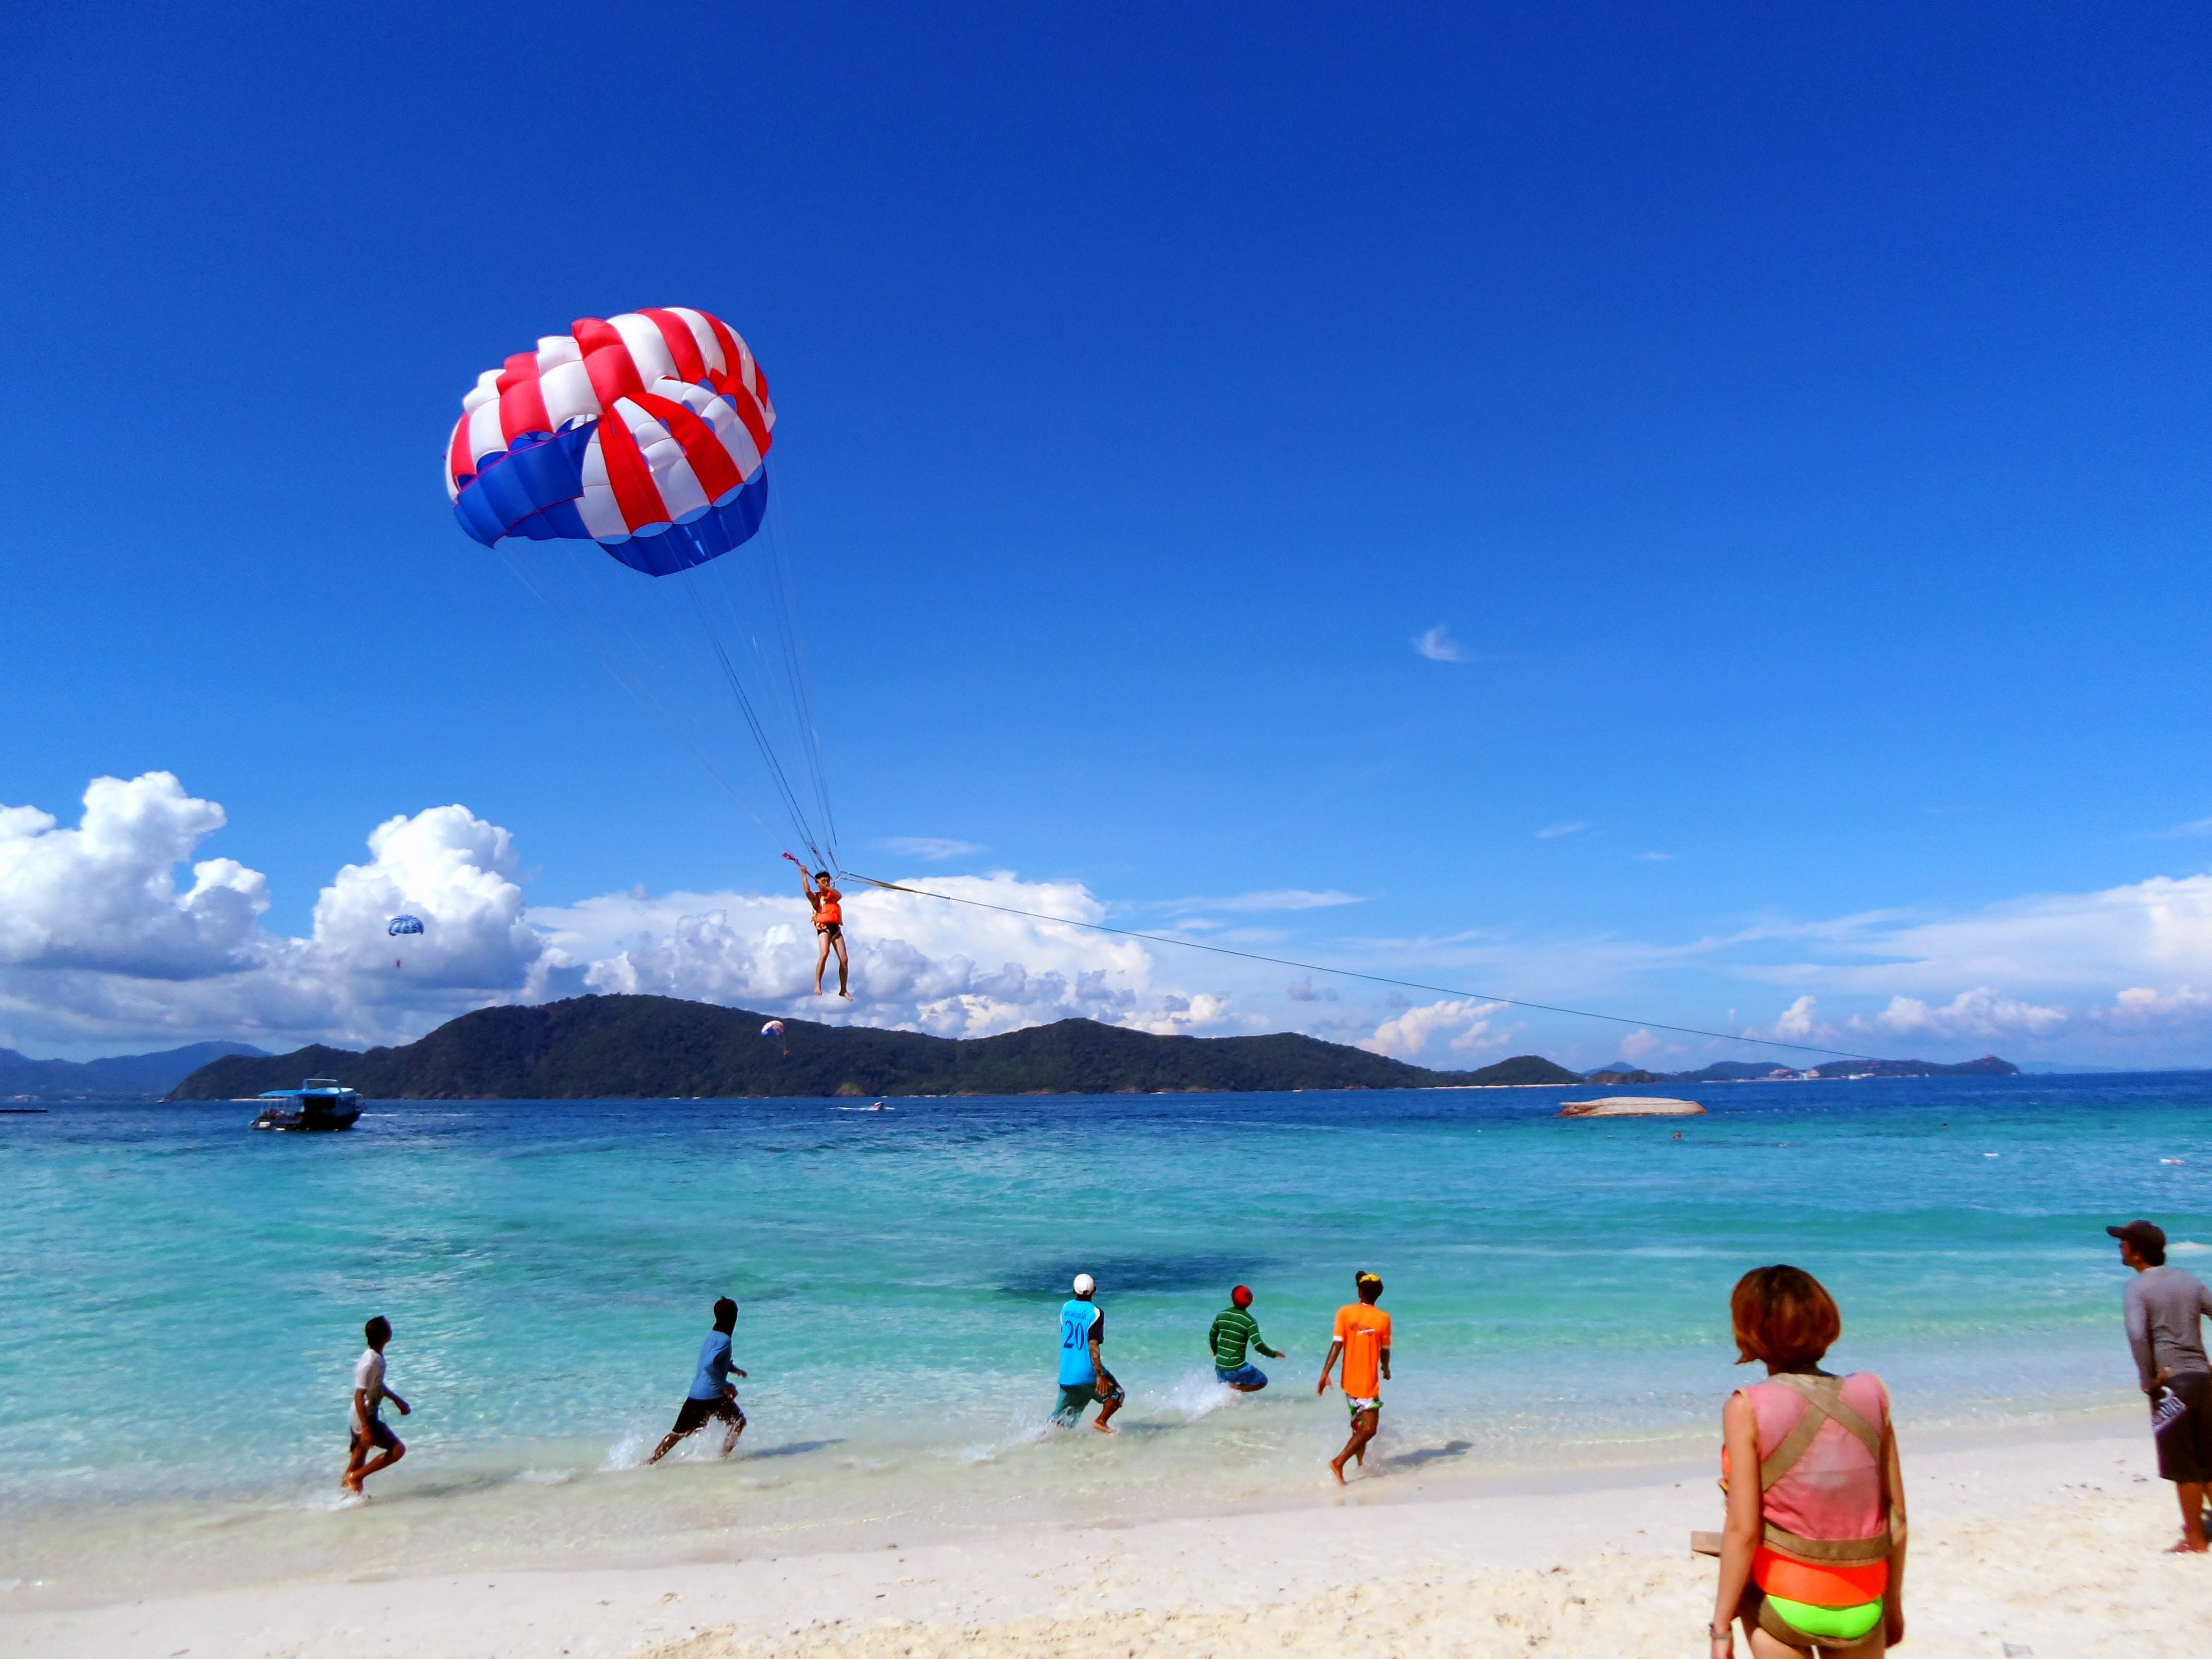 How-To-Enjoy-A-Klook-It-Yourself-Holiday-In-Pattaya-coral-island-parachute